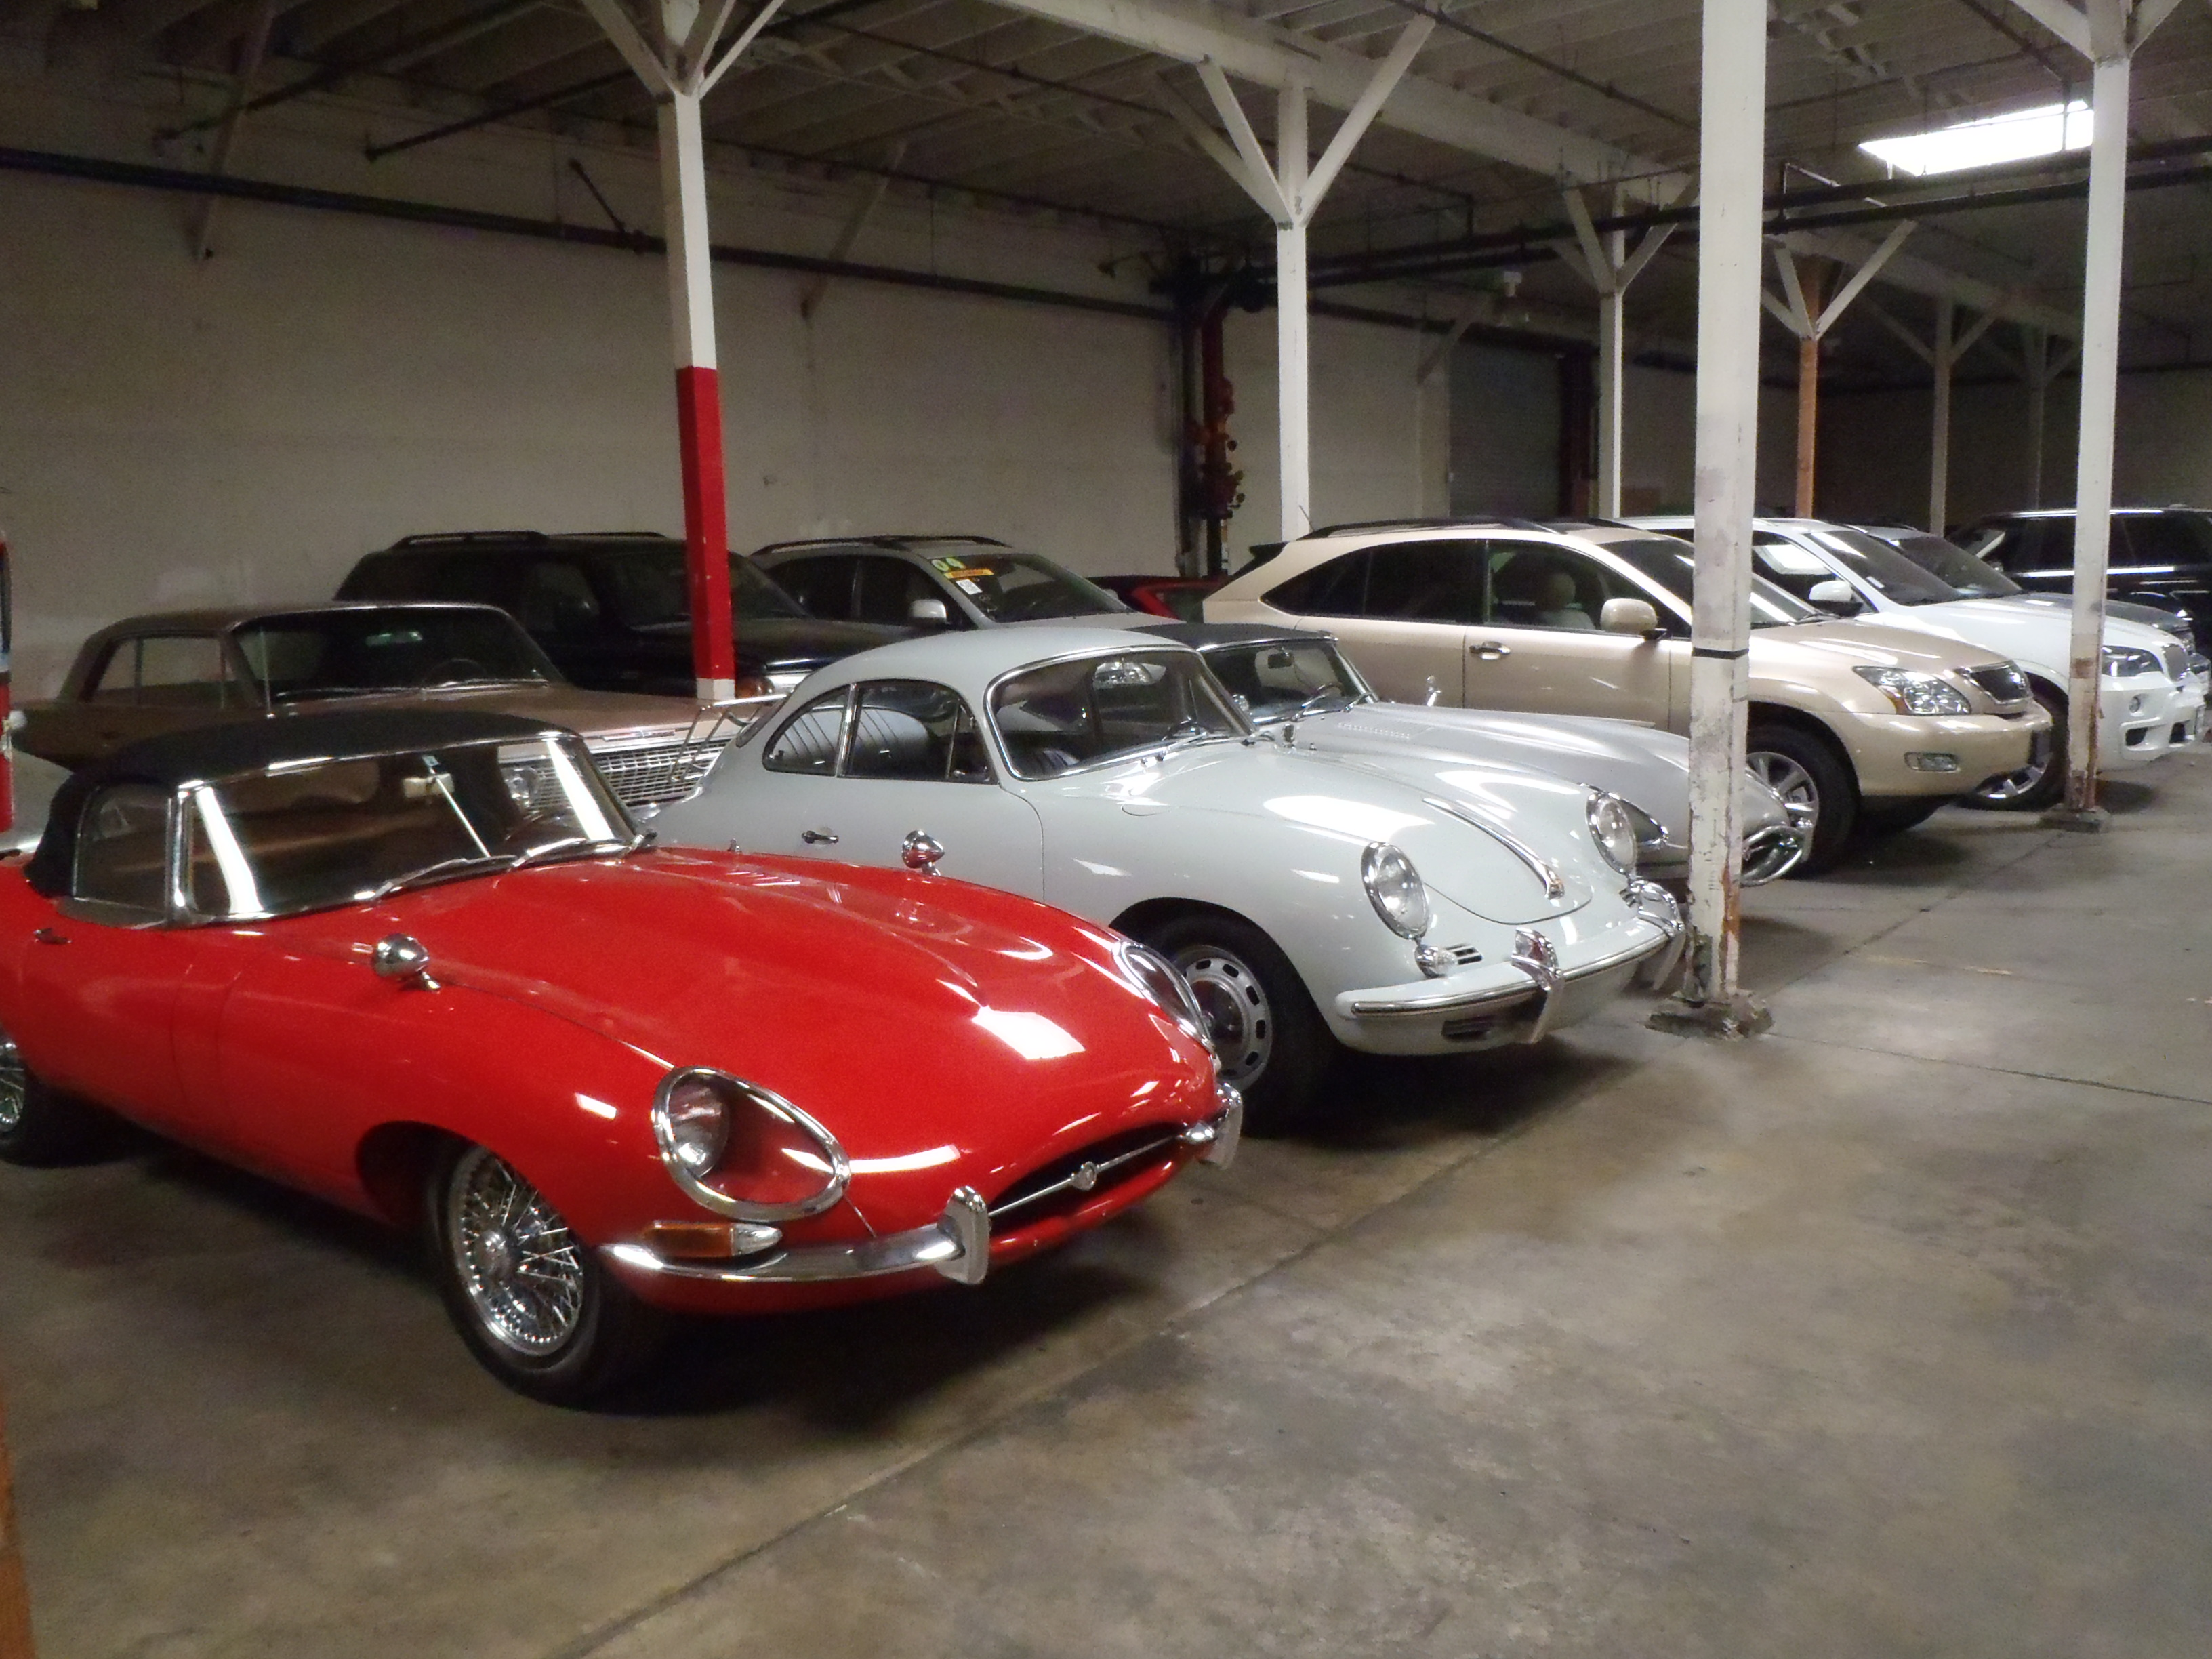 Shipping-Car-Jebel-Ali-Copart-Auction